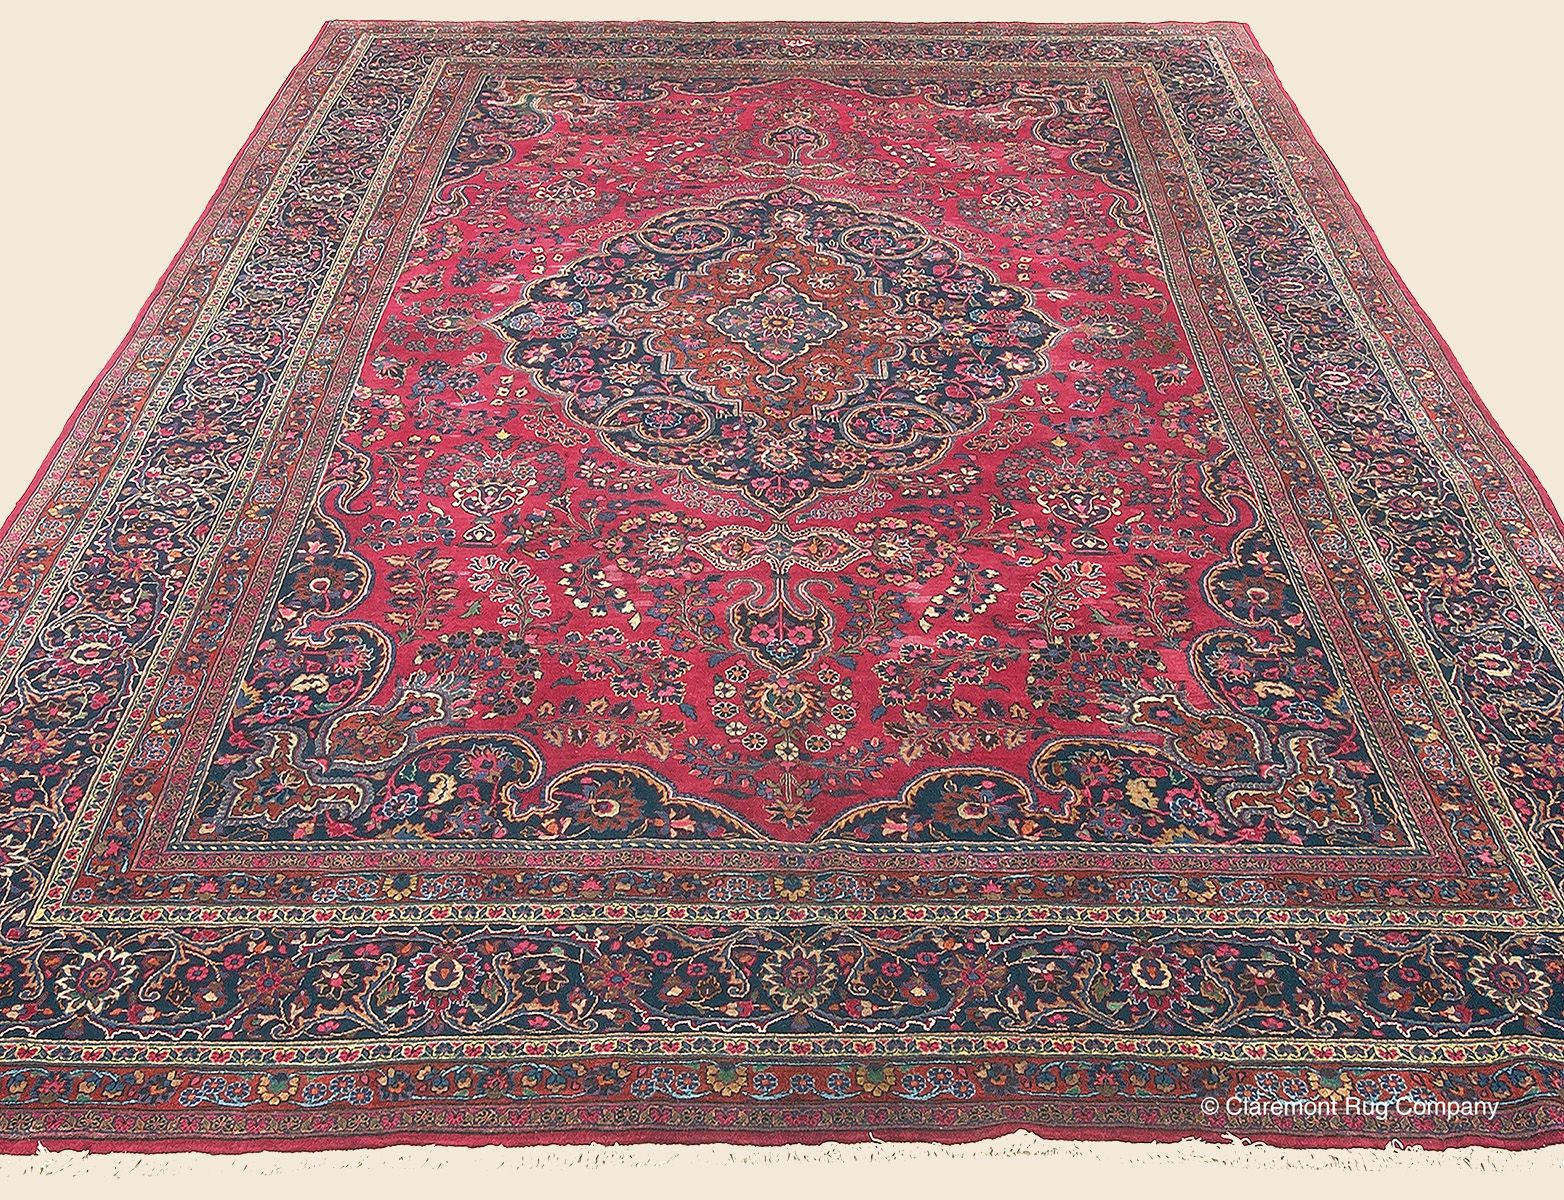 Meshed 11 1 X 14 11 Circa 1960 Price 5 500 Northeast Persian Antique Rug Claremont Rug Company Claremont Rug Company Rugs Oriental Persian Rugs